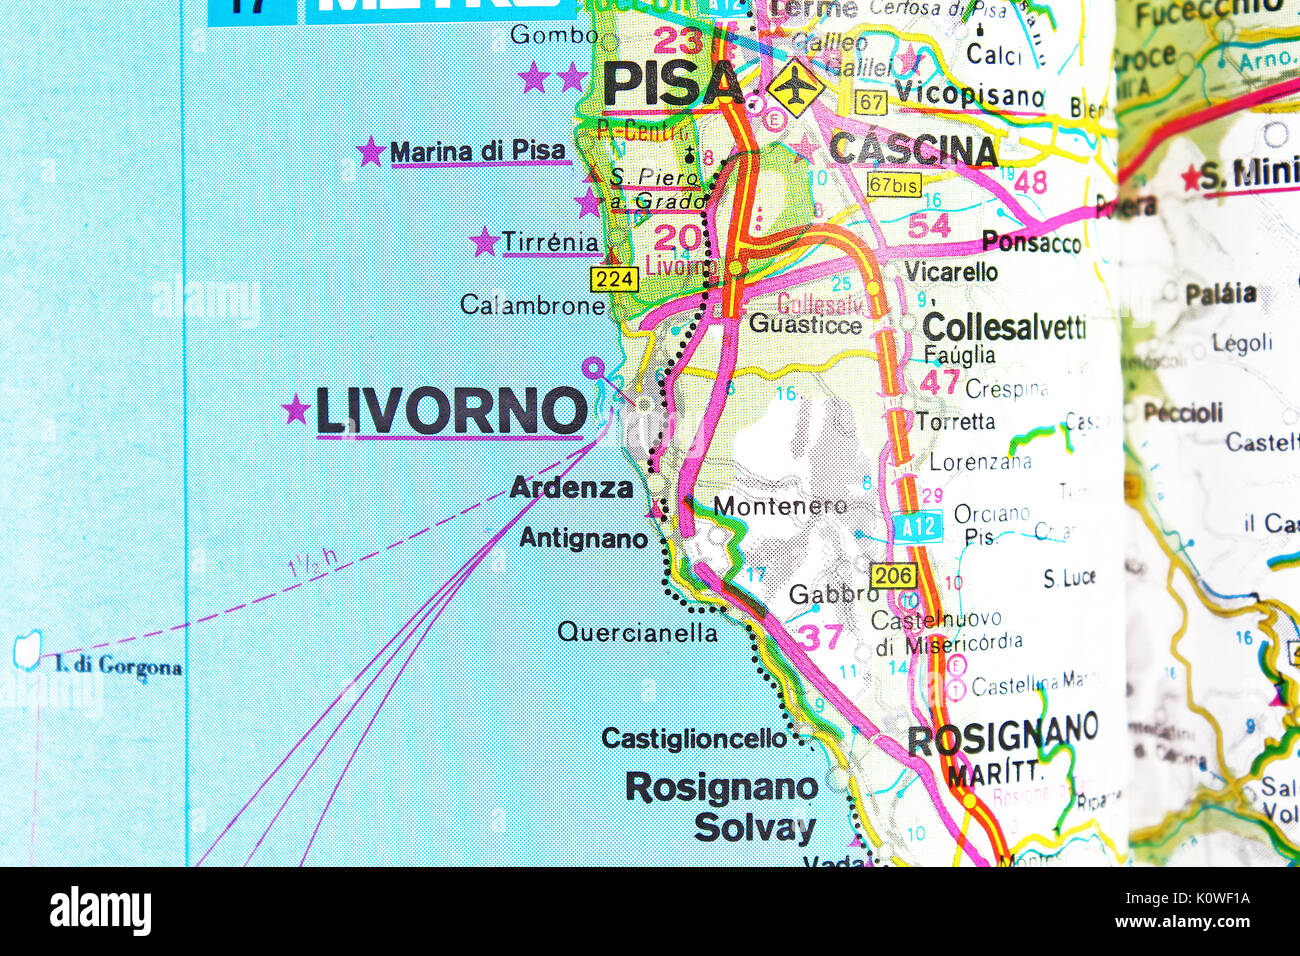 Livorno Cartina.Livorno Map Stock Photos Livorno Map Stock Images Alamy